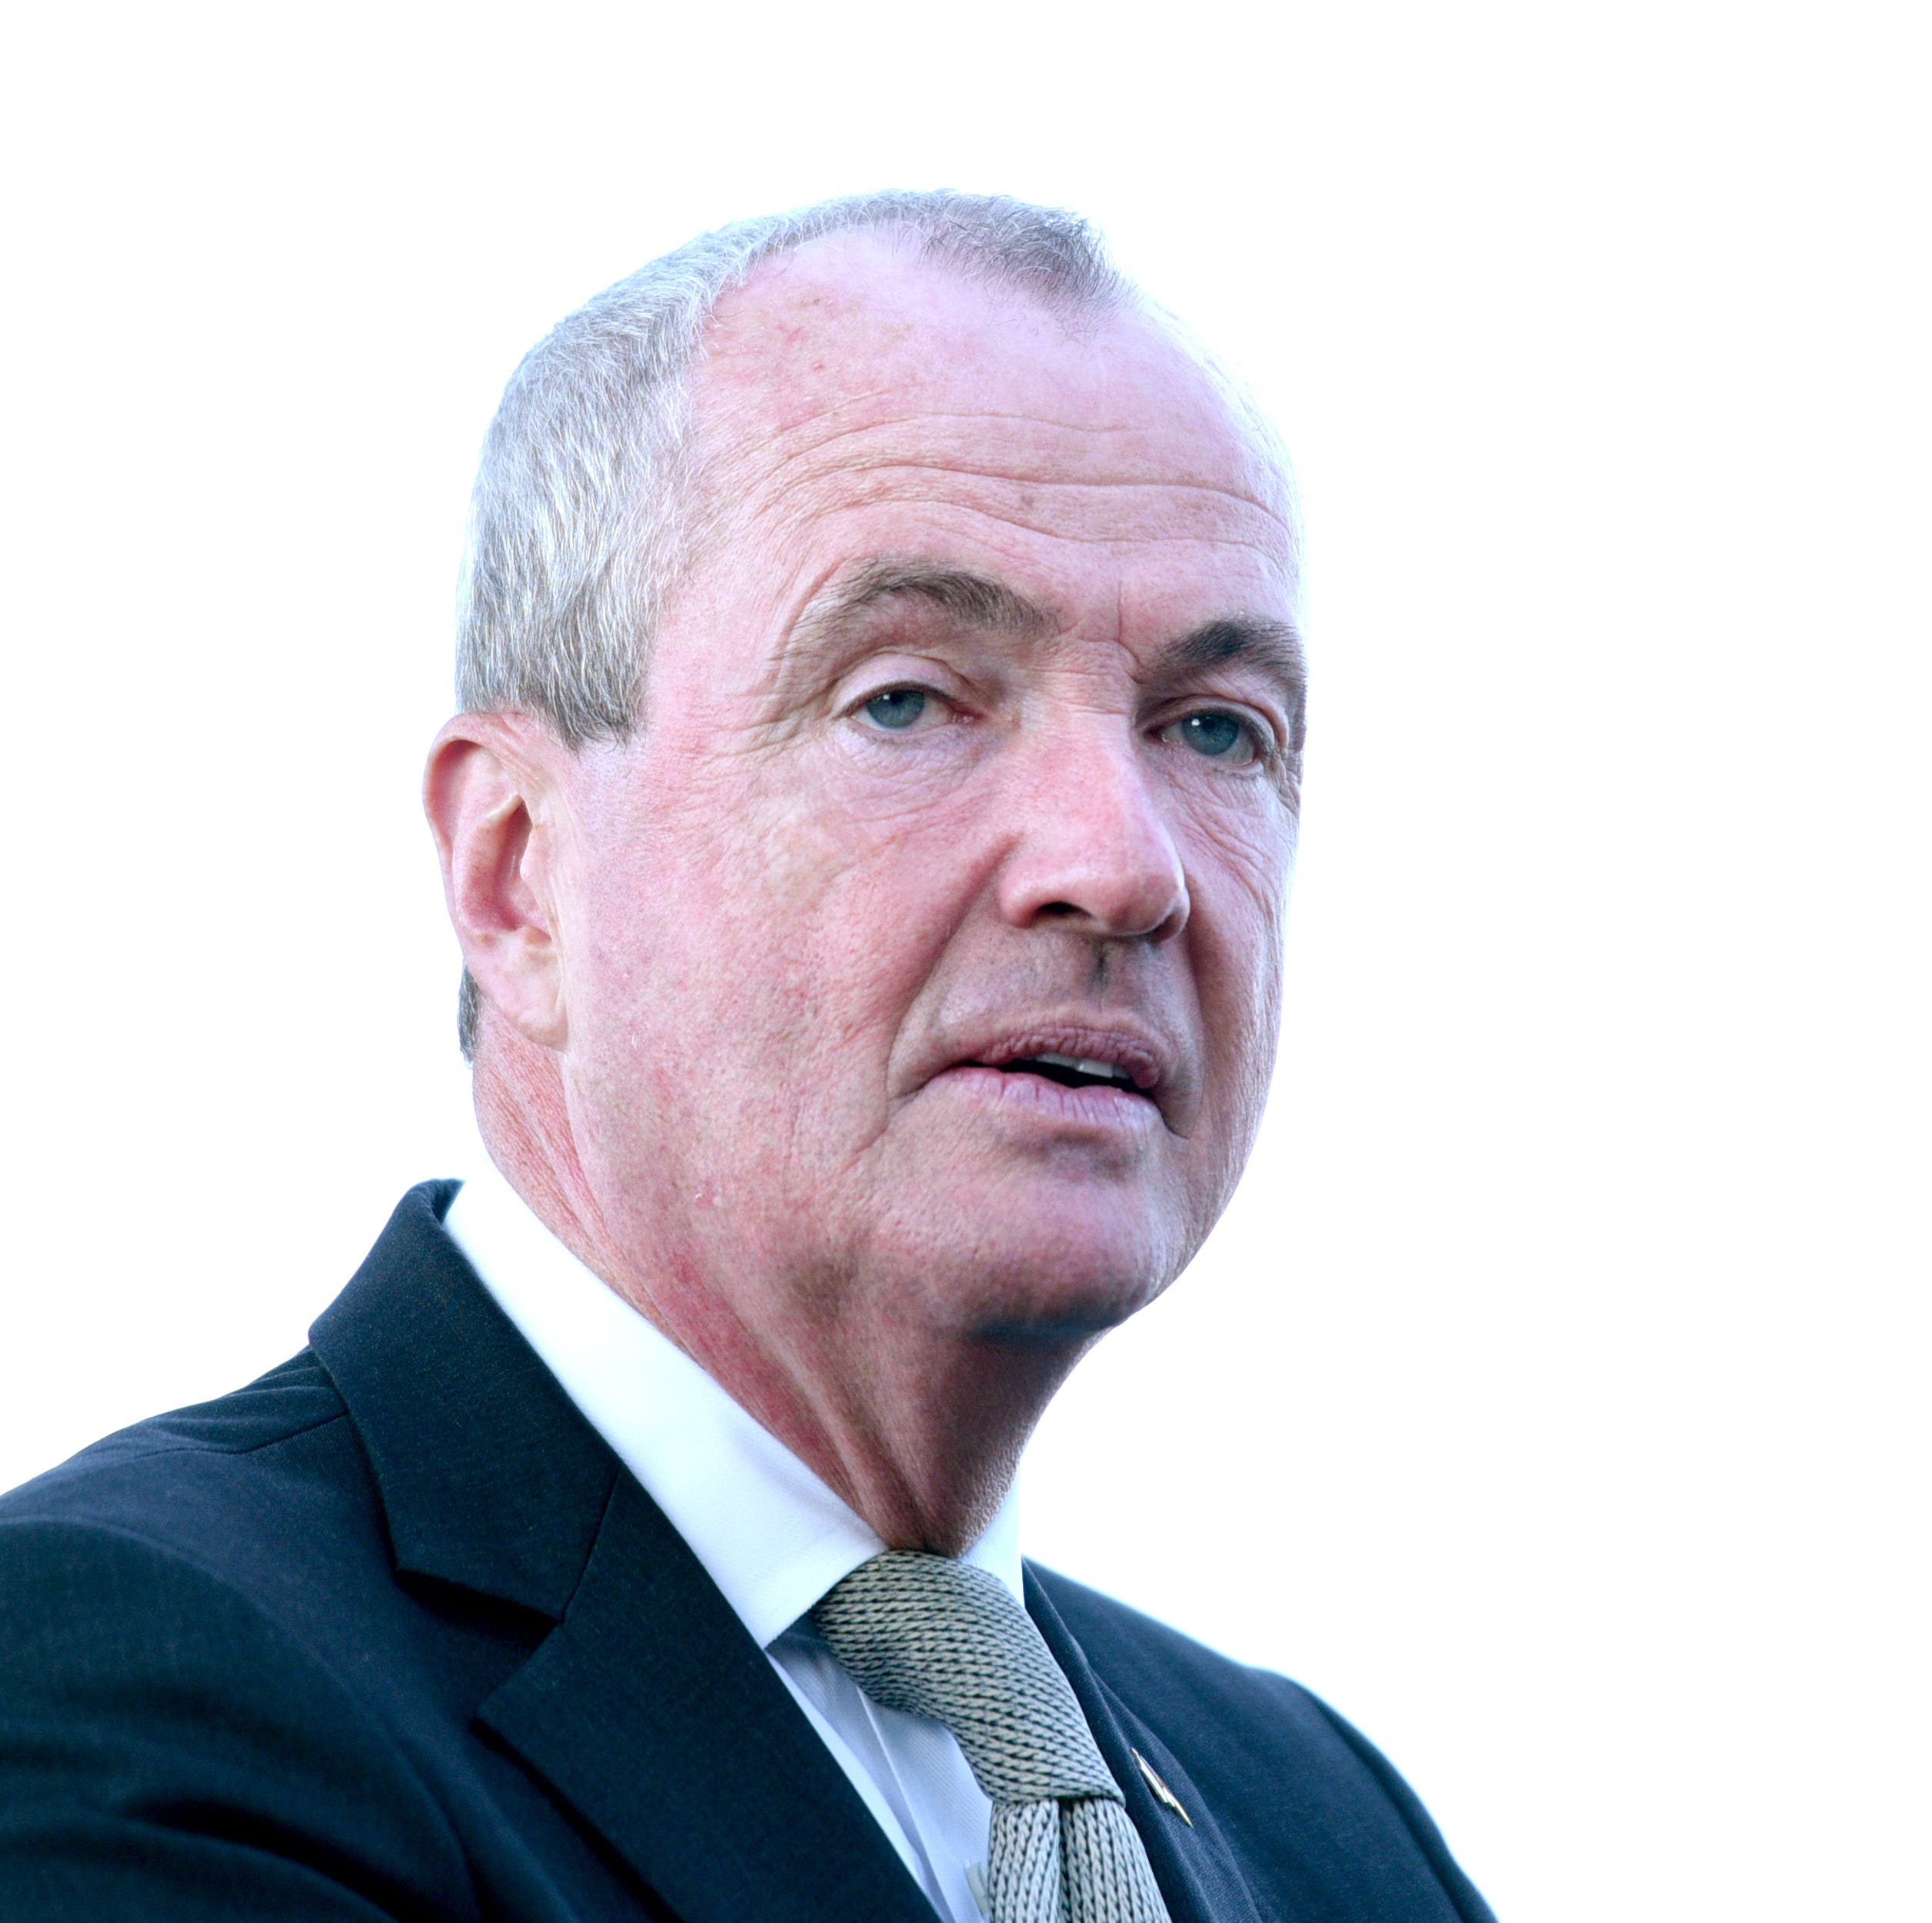 Eight people die each day due to opioids. Here's how Phil Murphy is fighting the crisis